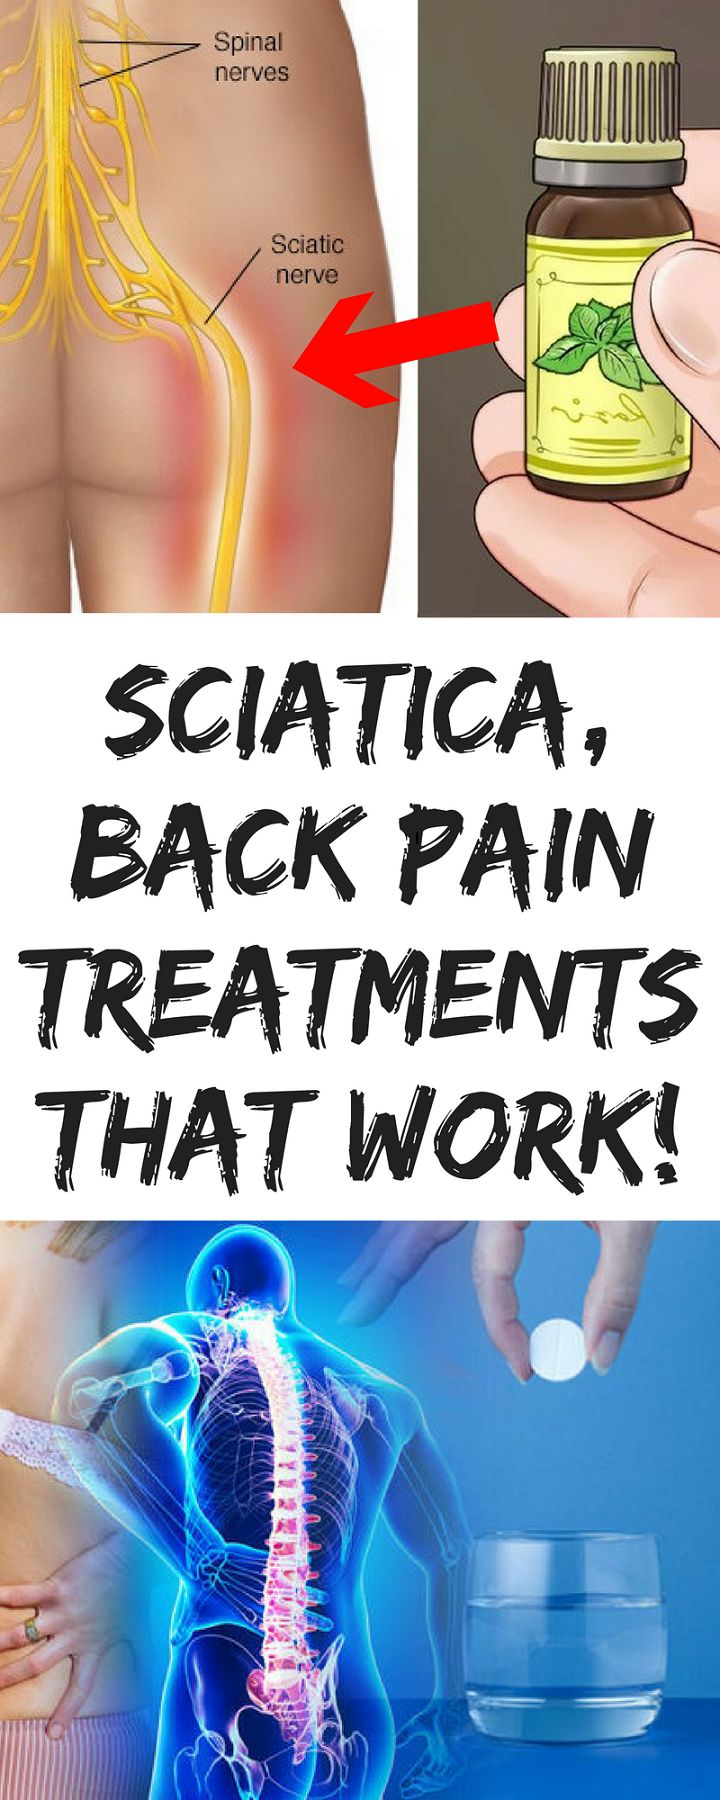 #Sciatica, Back Pain Treatments that WORK!